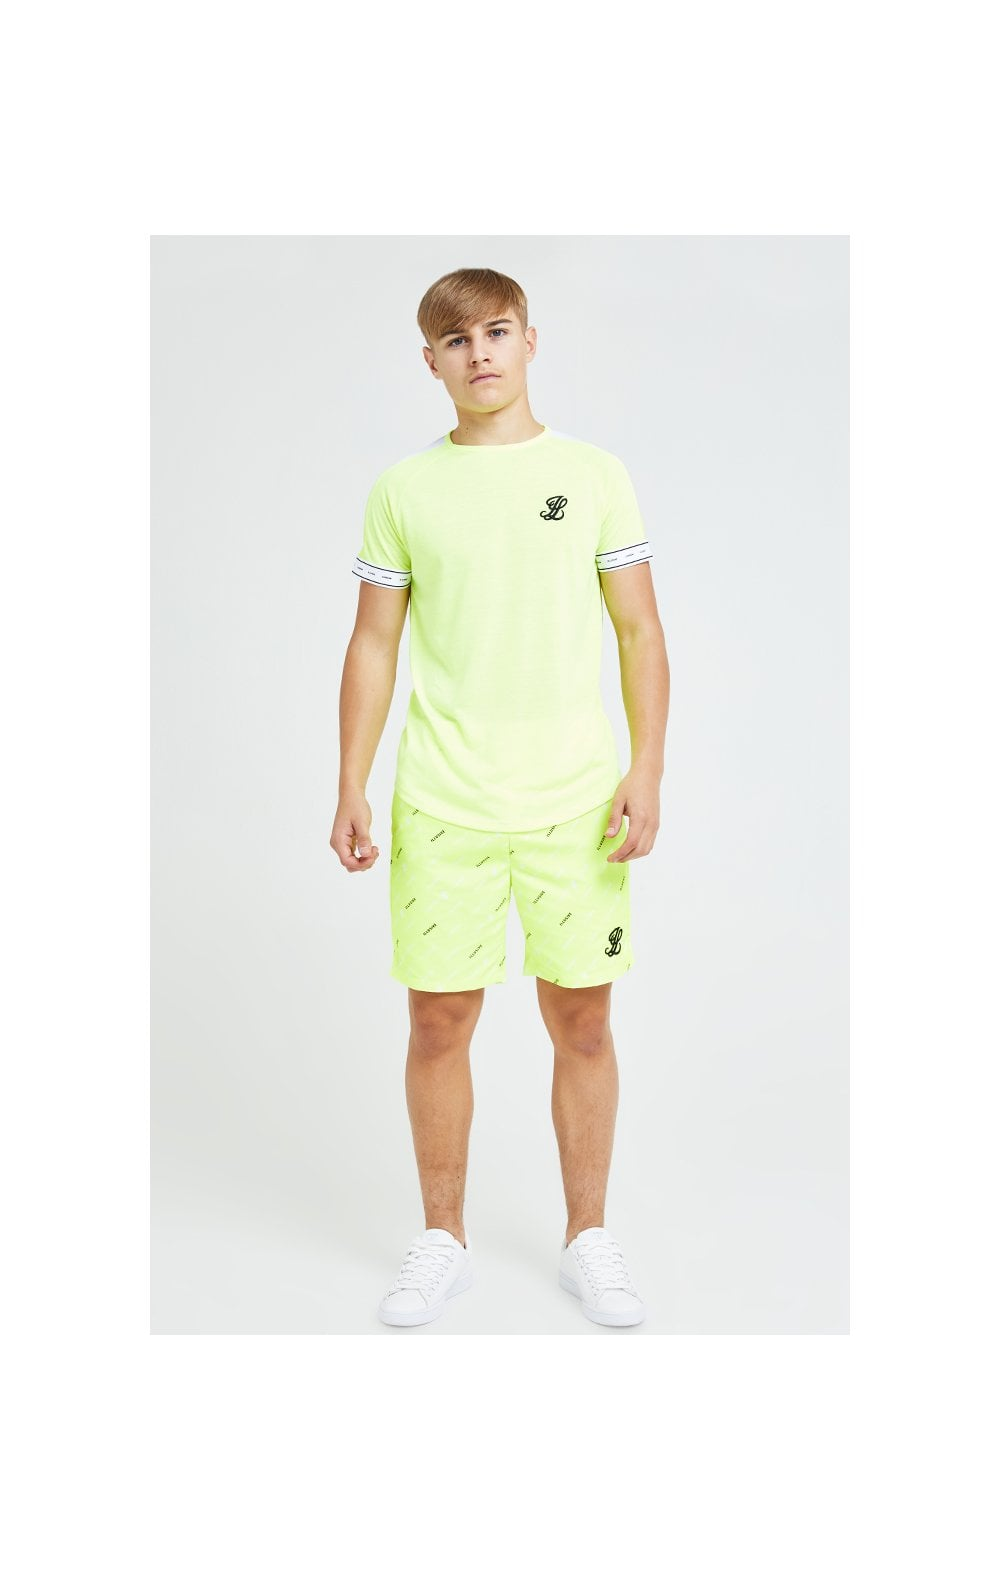 Illusive London Fade Panel Tech Tee - Neon Yellow (4)